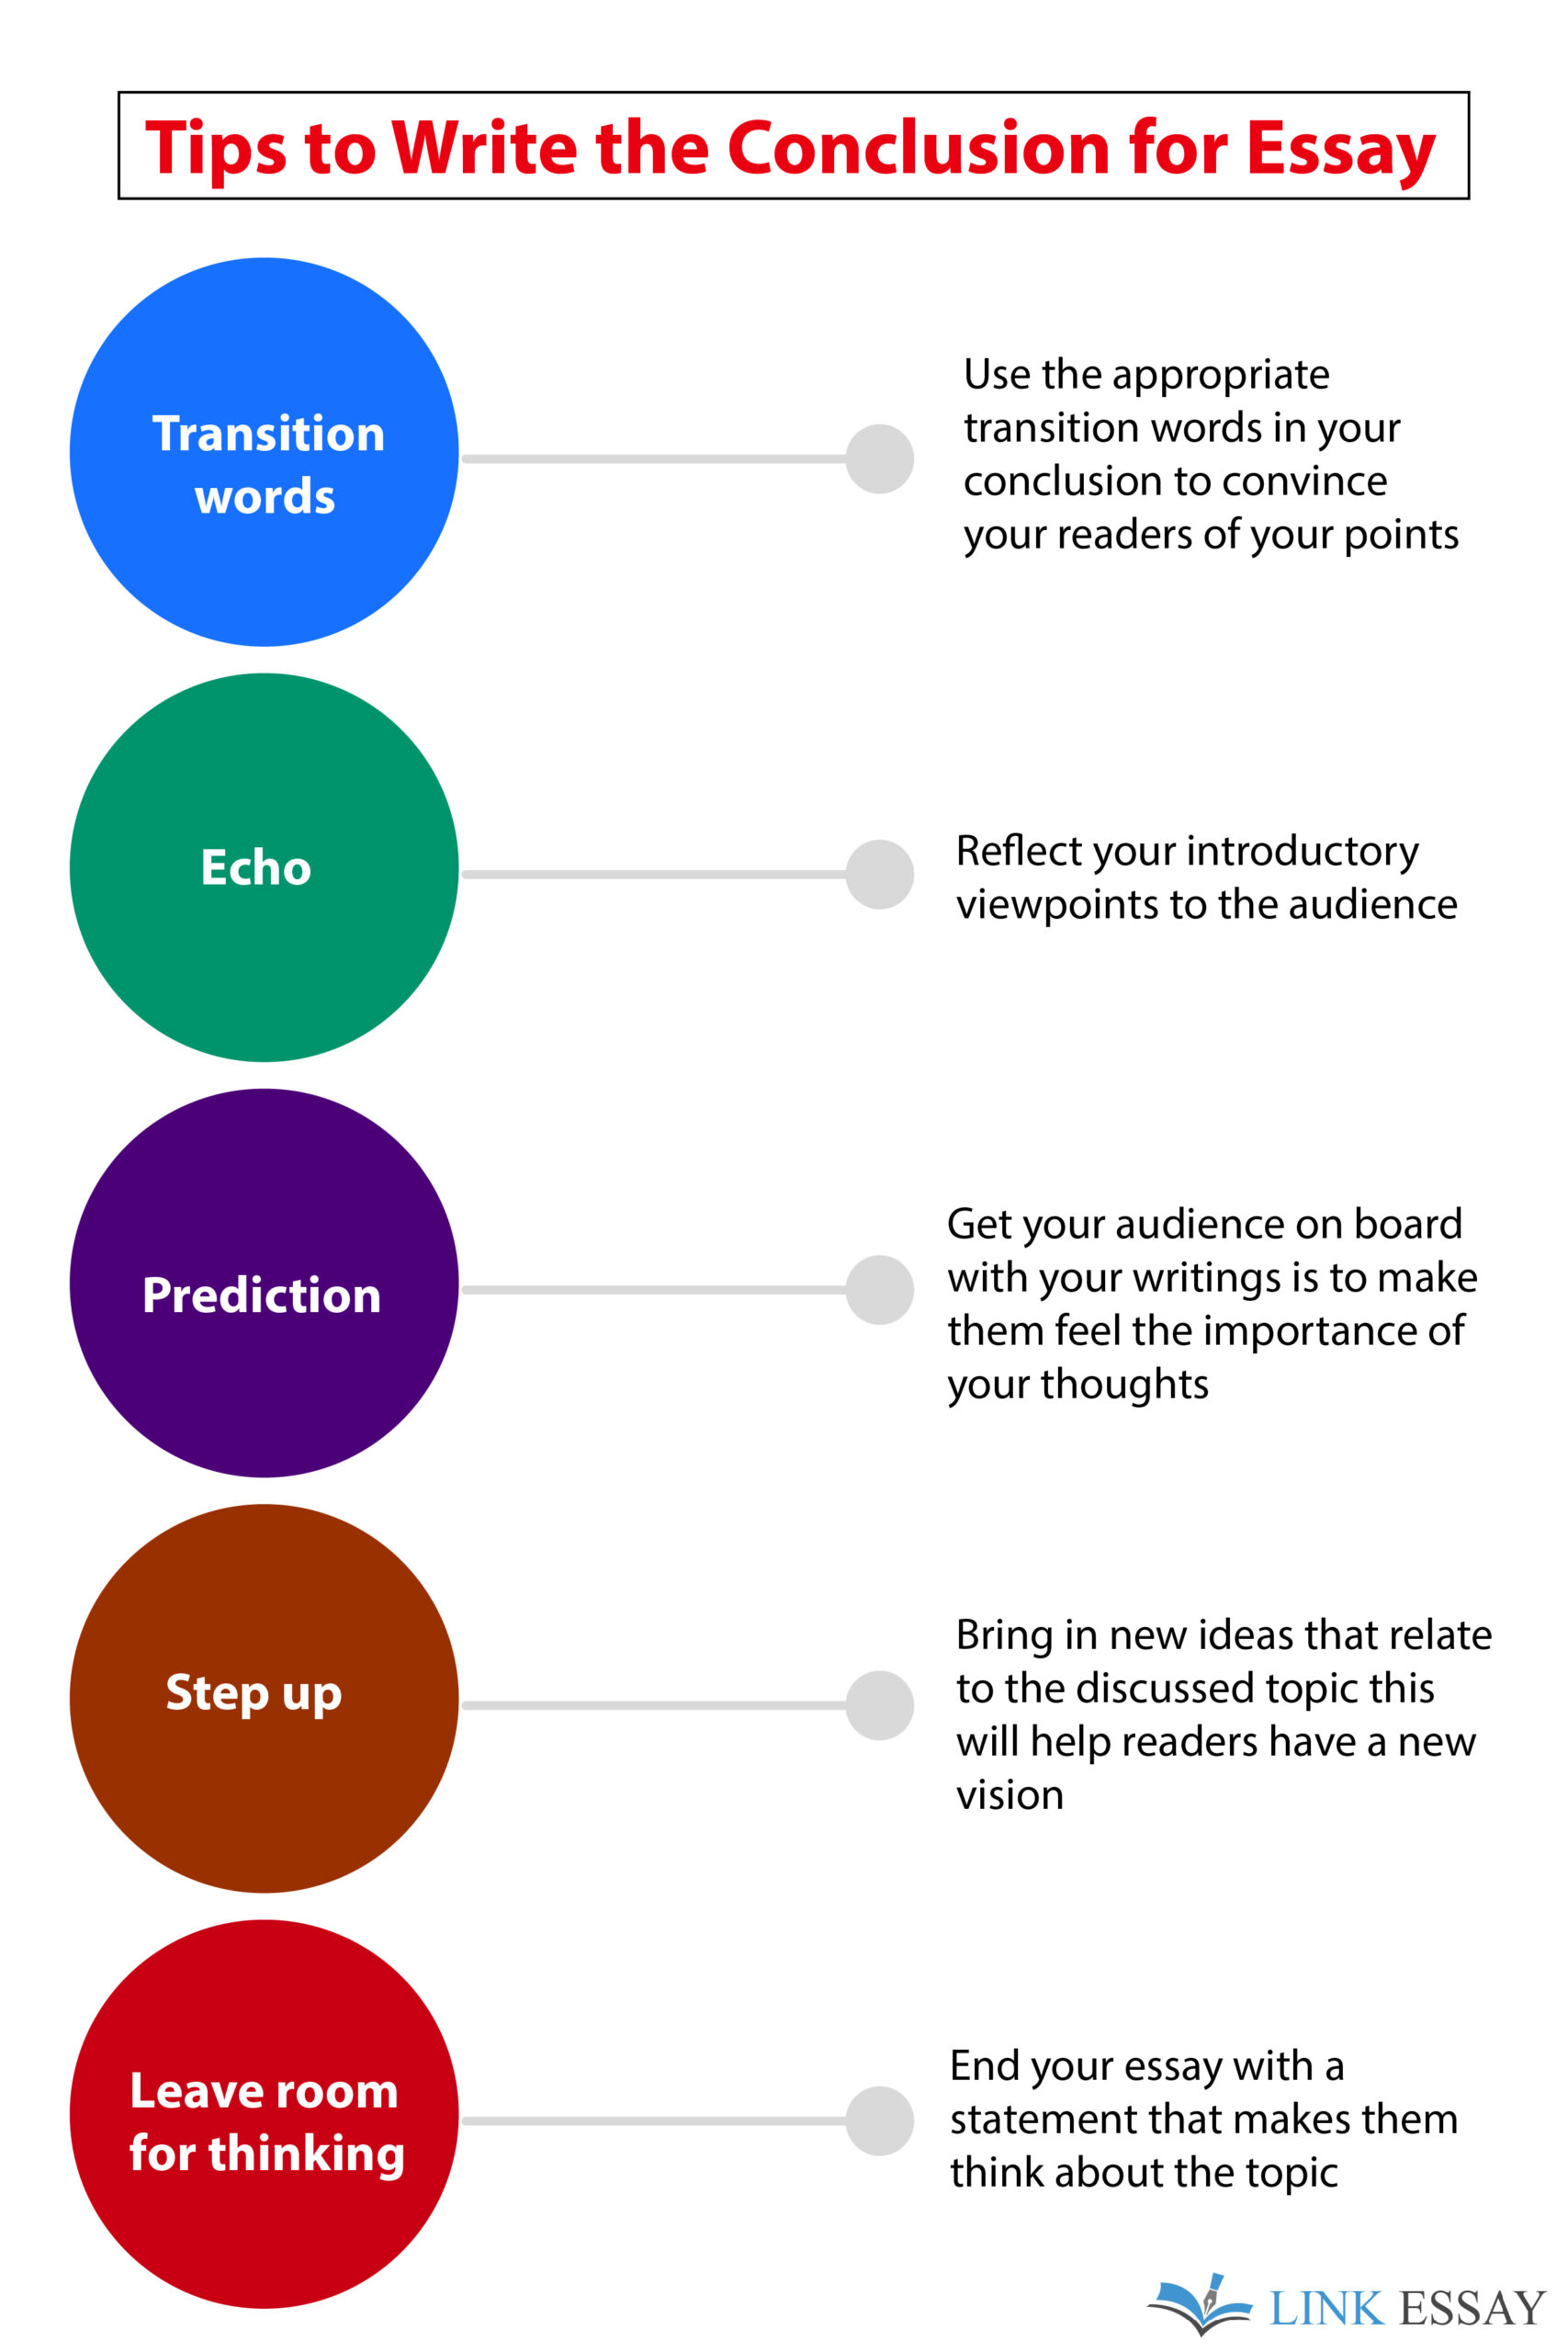 Tips to Write Conclusion